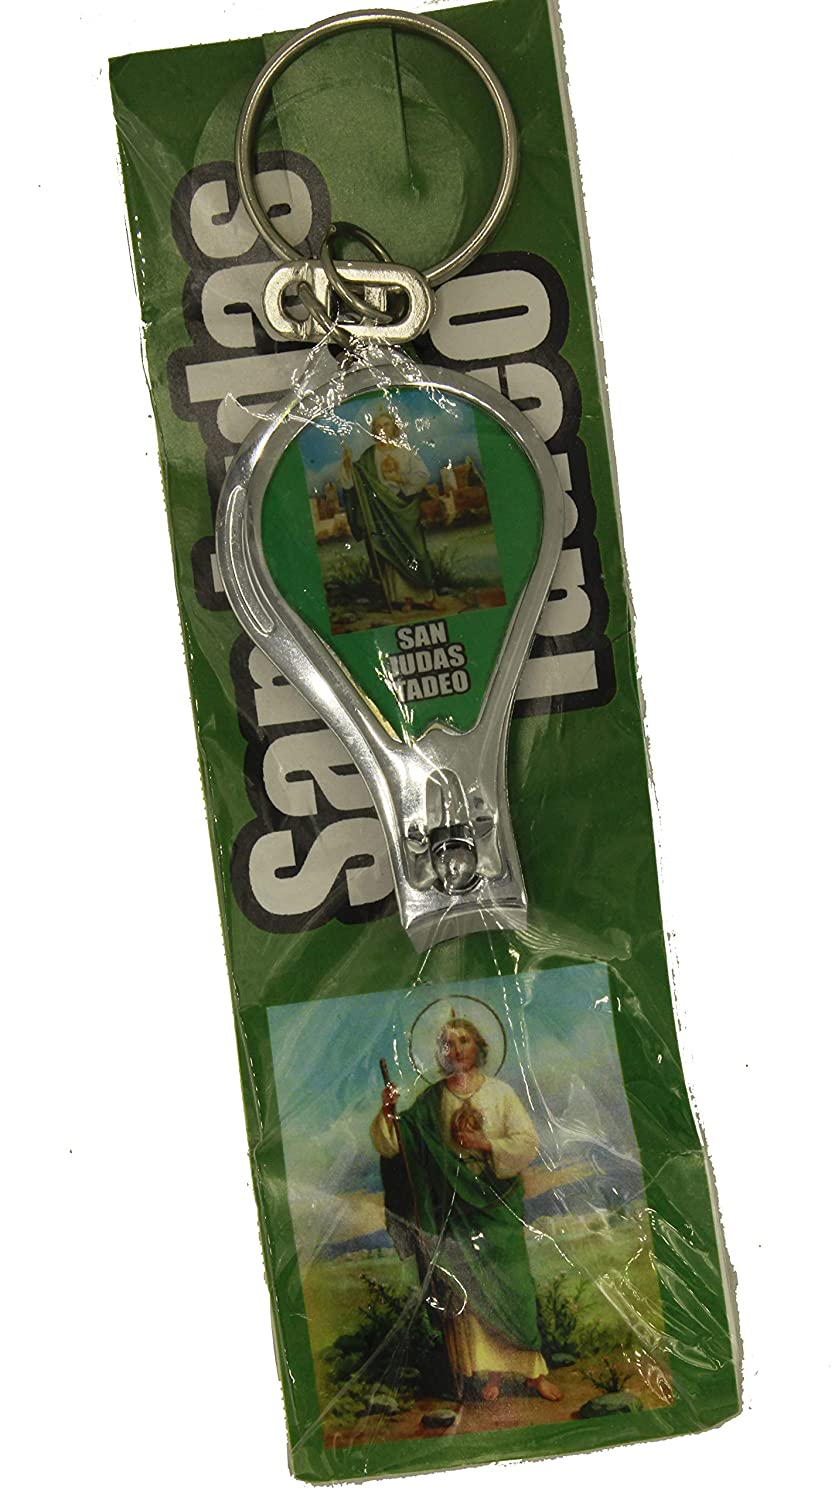 Amazon.com : St Jude Thaddeus Mexico Key Chain Nail Clipper ...